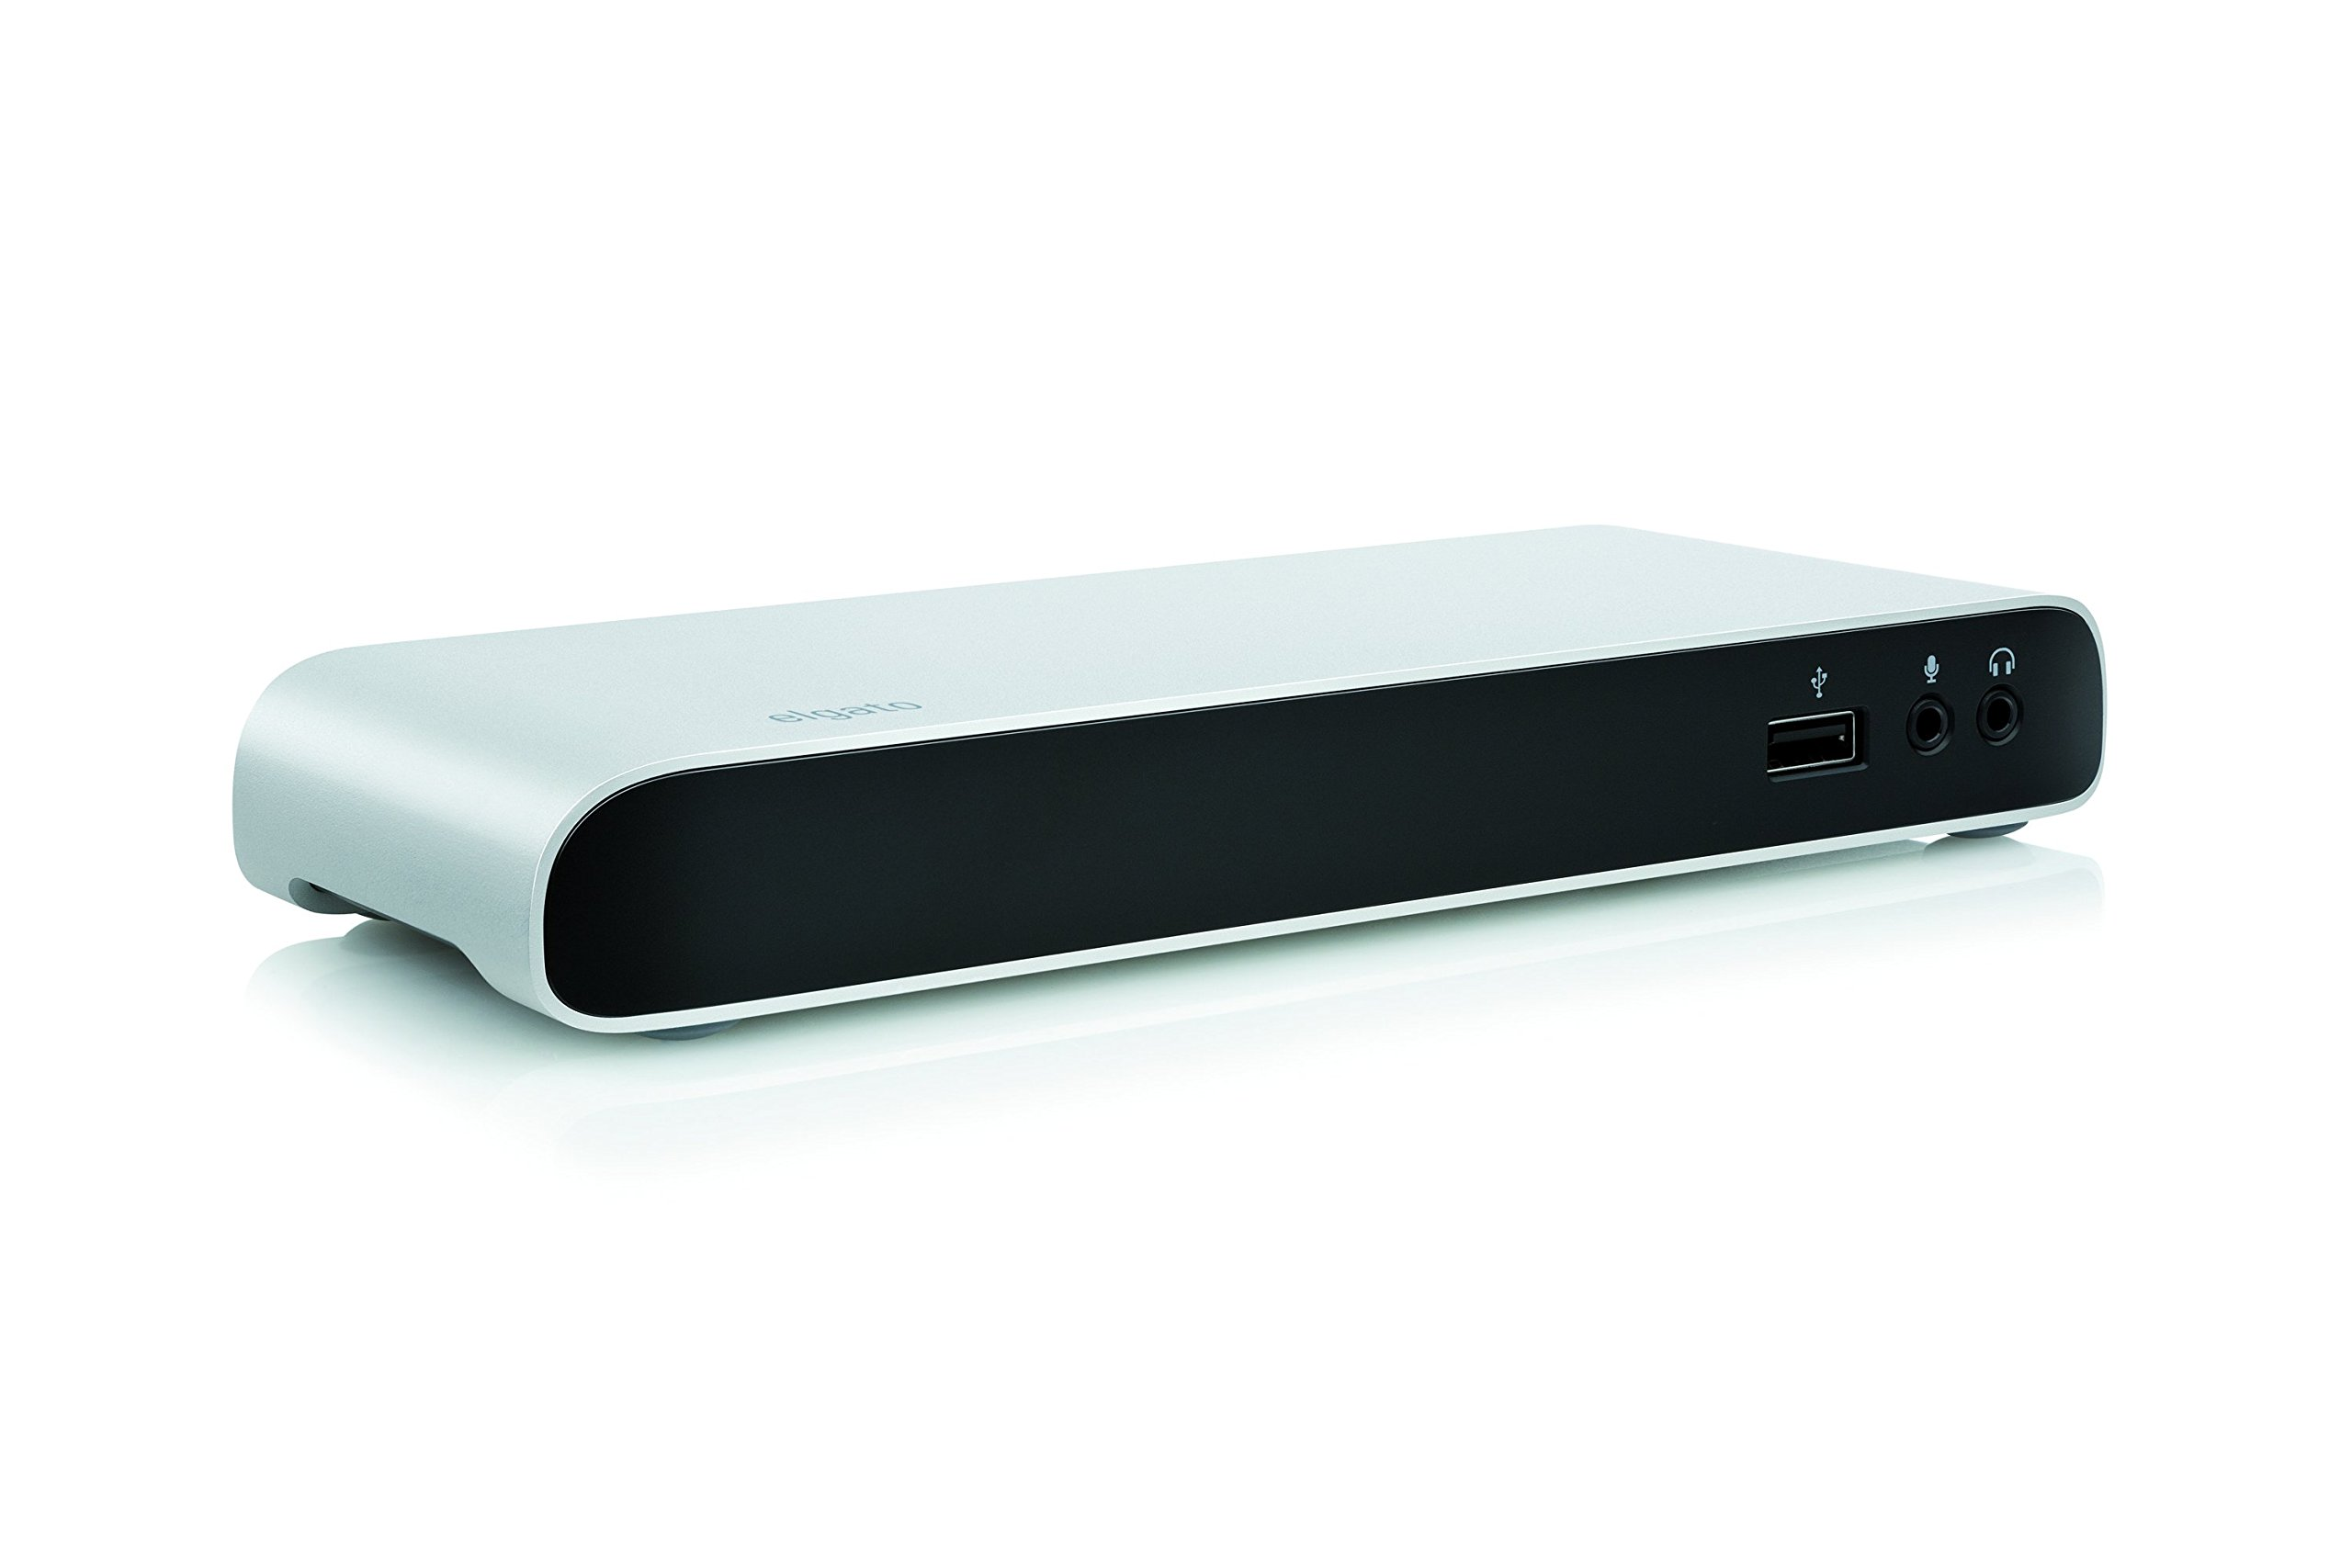 Elgato Thunderbolt 2 Dock with 50 cm Thunderbolt cable, 20Gb/s, 4K support, 2x Thunderbolt 2, 3x USB 3.0, audio input and output, Gigabit Ethernet, aluminum chassis